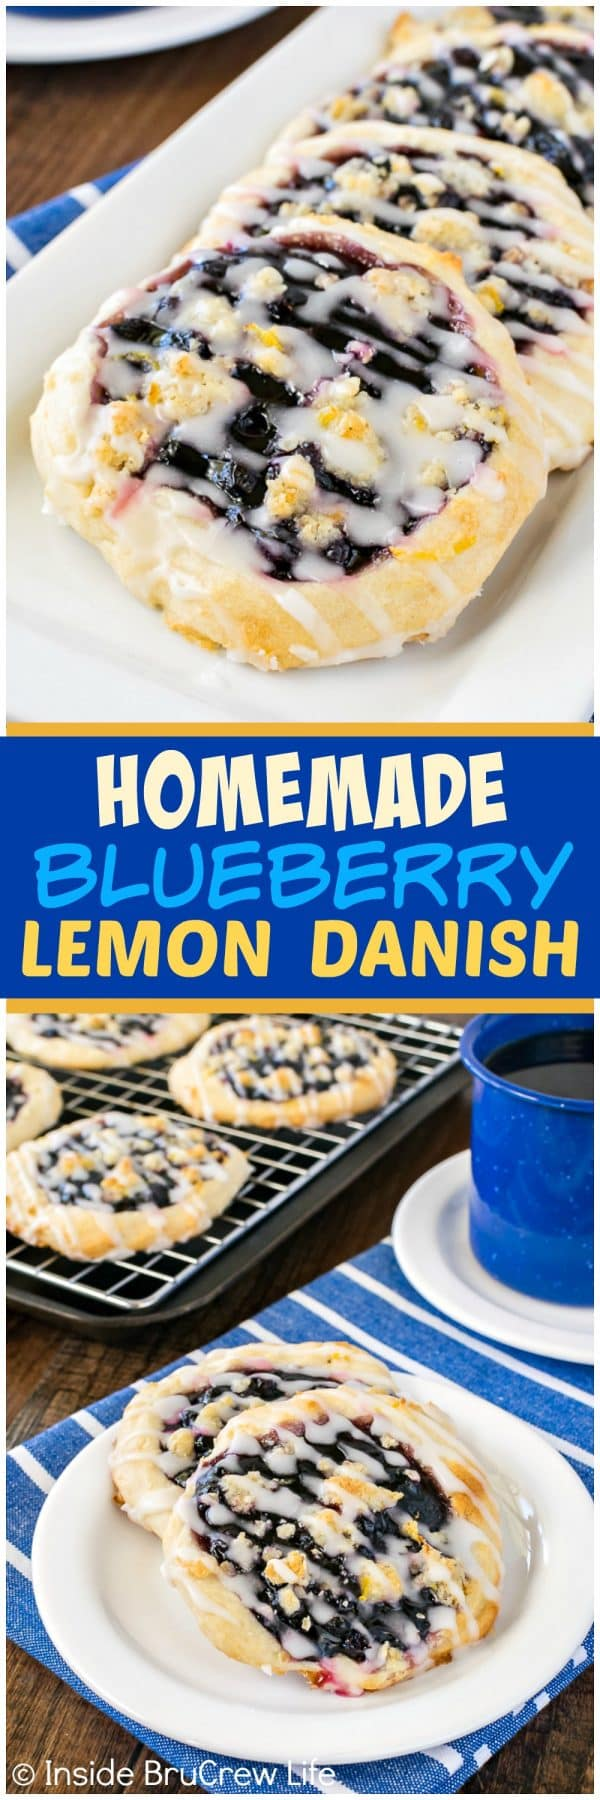 Homemade Blueberry Lemon Danish - a lemon crumble and glaze adds a fresh twist to these easy blueberry pie pastries. Such an easy recipe to make for breakfast or brunch!